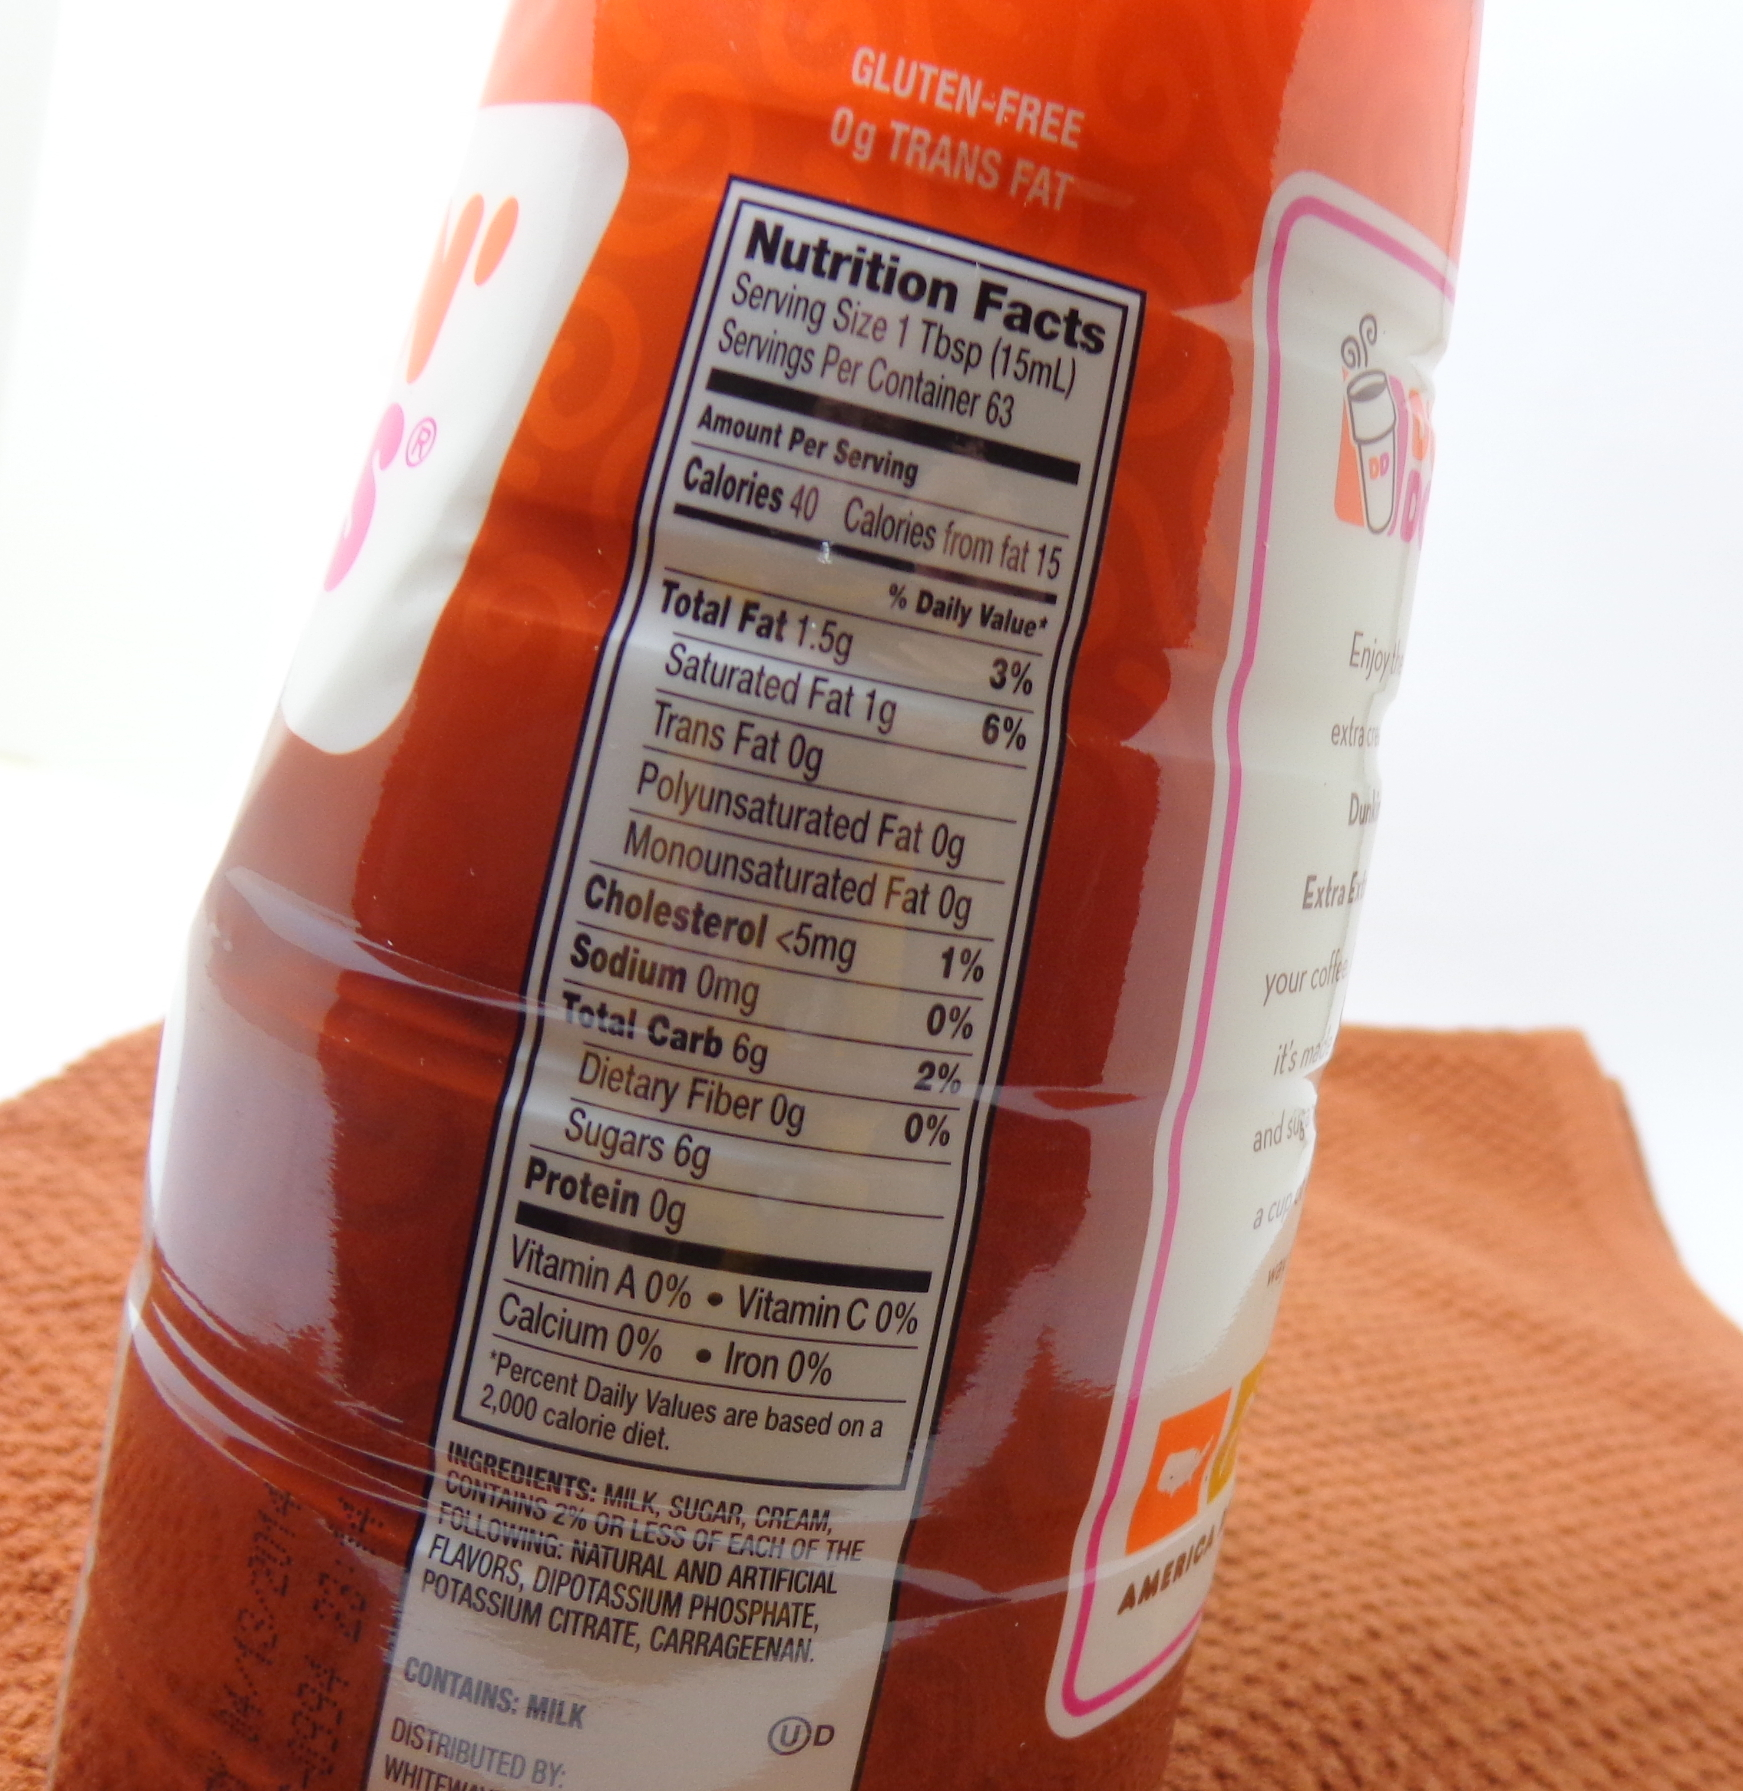 Dunkin Donuts Cinnamon Roll Coffee Nutrition Facts